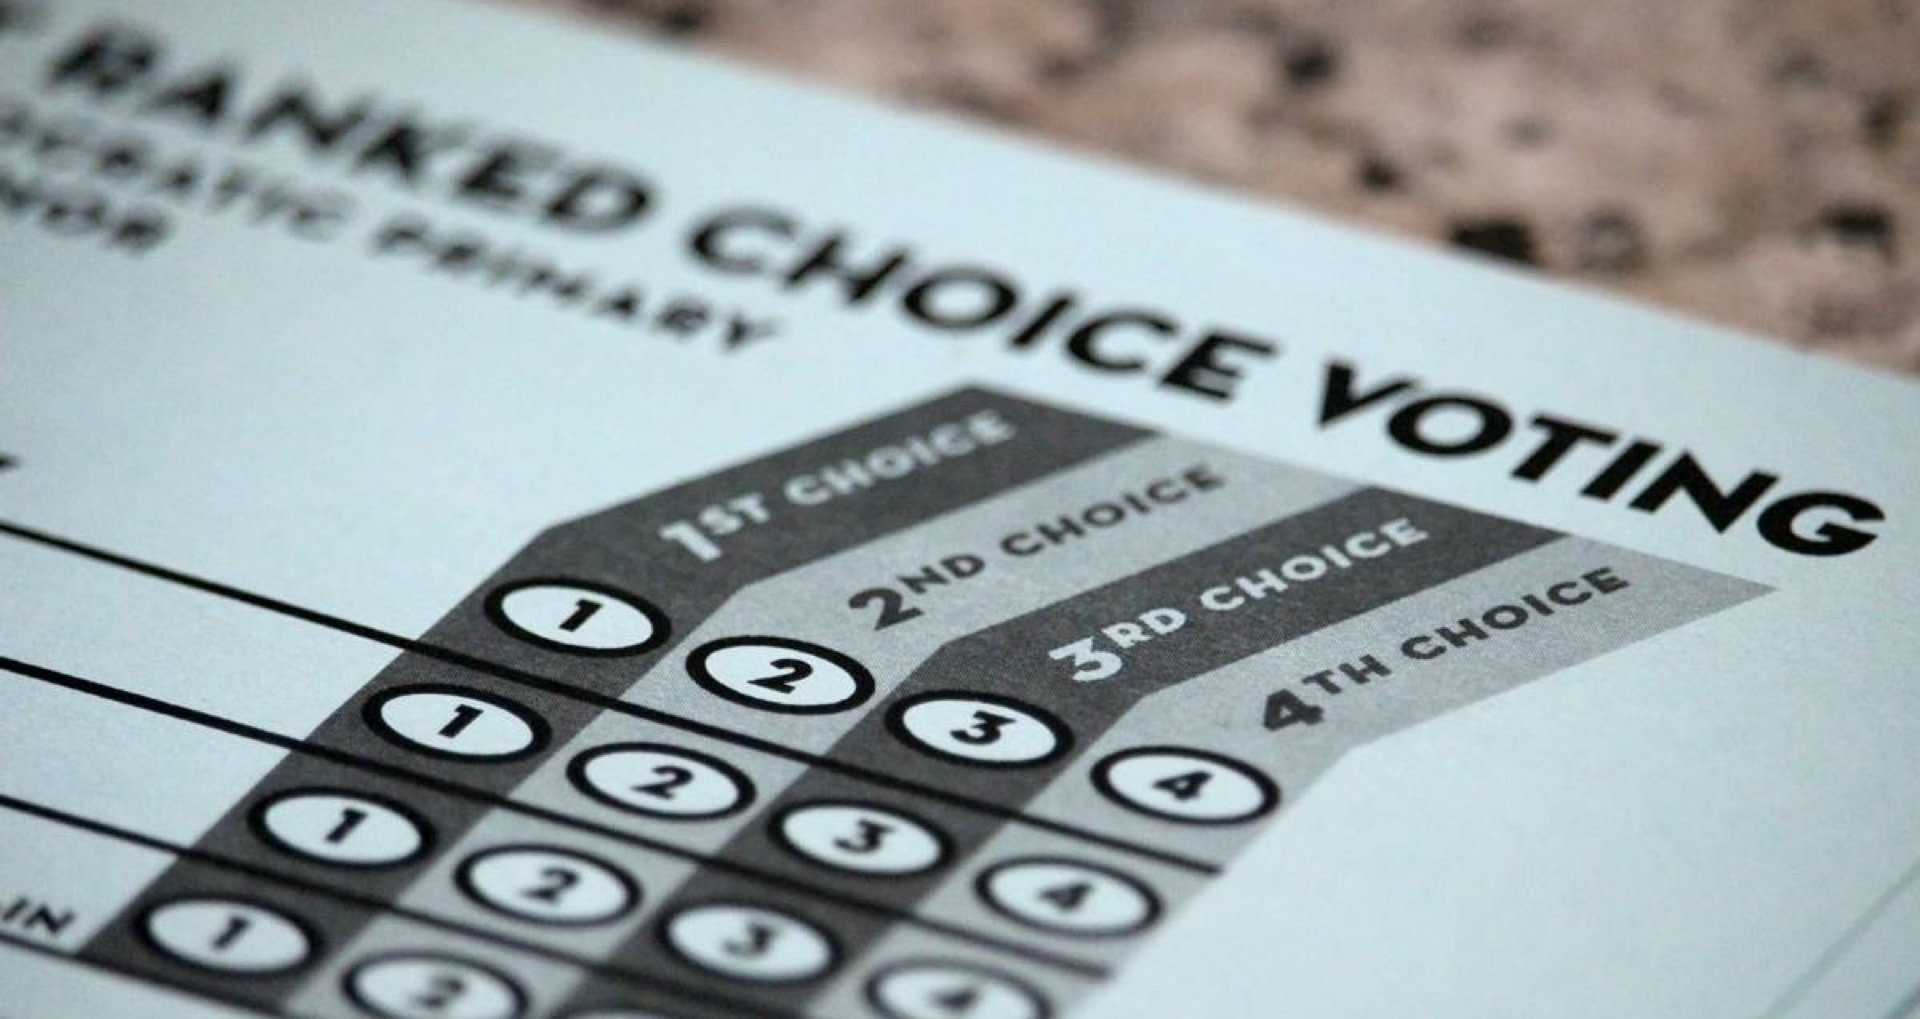 Mass. Voters May Get Ranked Choice Voting on the 2020 Ballot